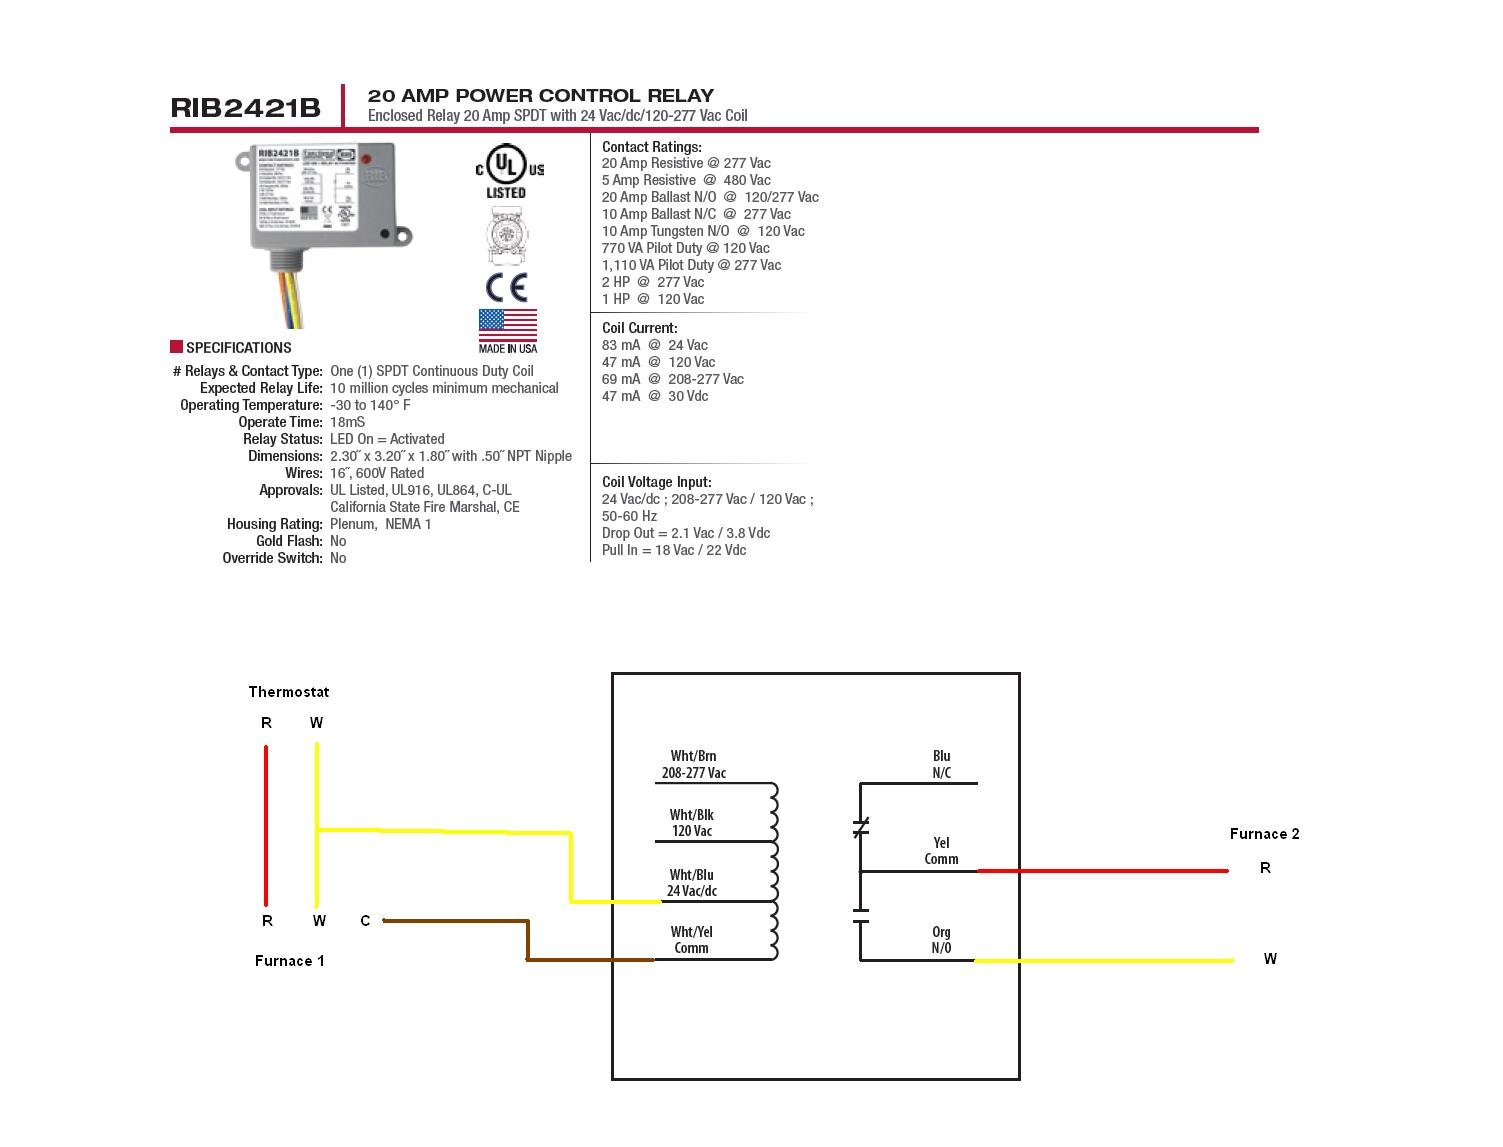 2009 12 30_011105_2furnacesRelayWiring how do i connect two furnaces to run off one thermostat? ribu1c wiring diagram at pacquiaovsvargaslive.co